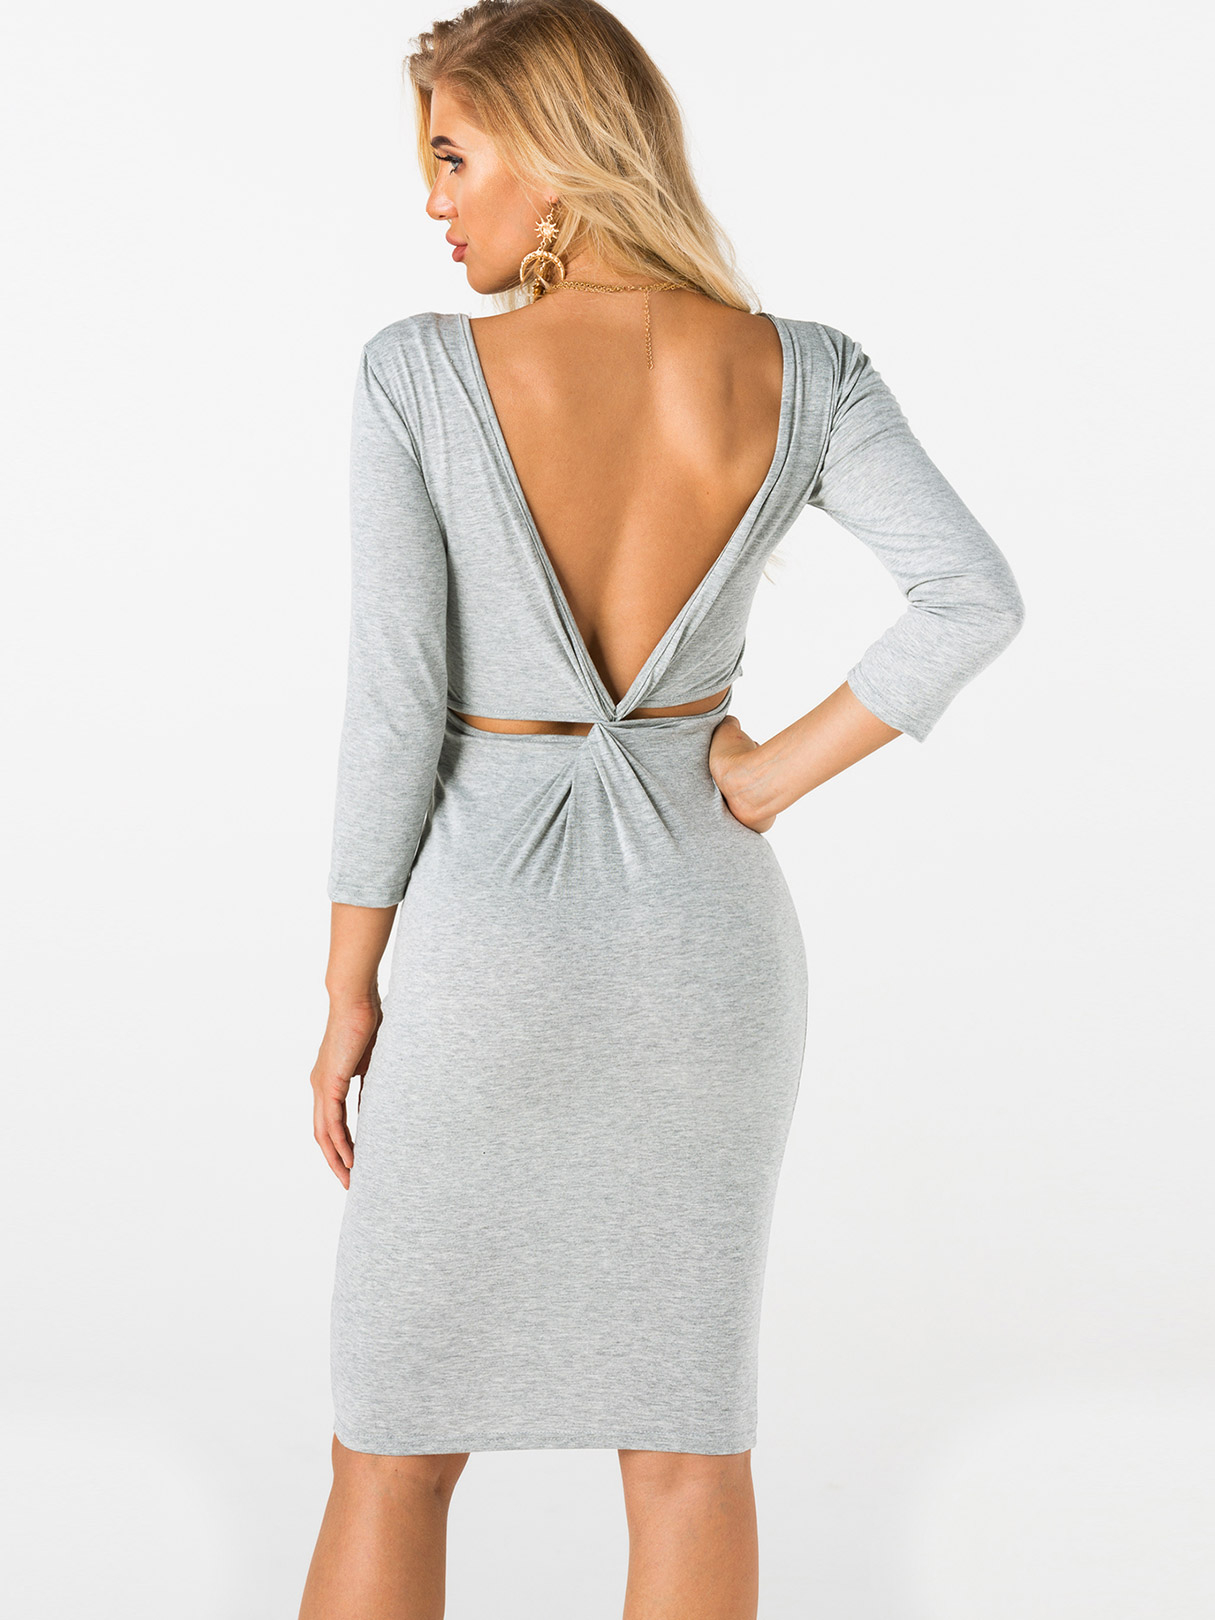 Grey Backless Design Plain Round Neck Long Sleeves Midi Dress grey lace up design plain round neck long sleeves sweater